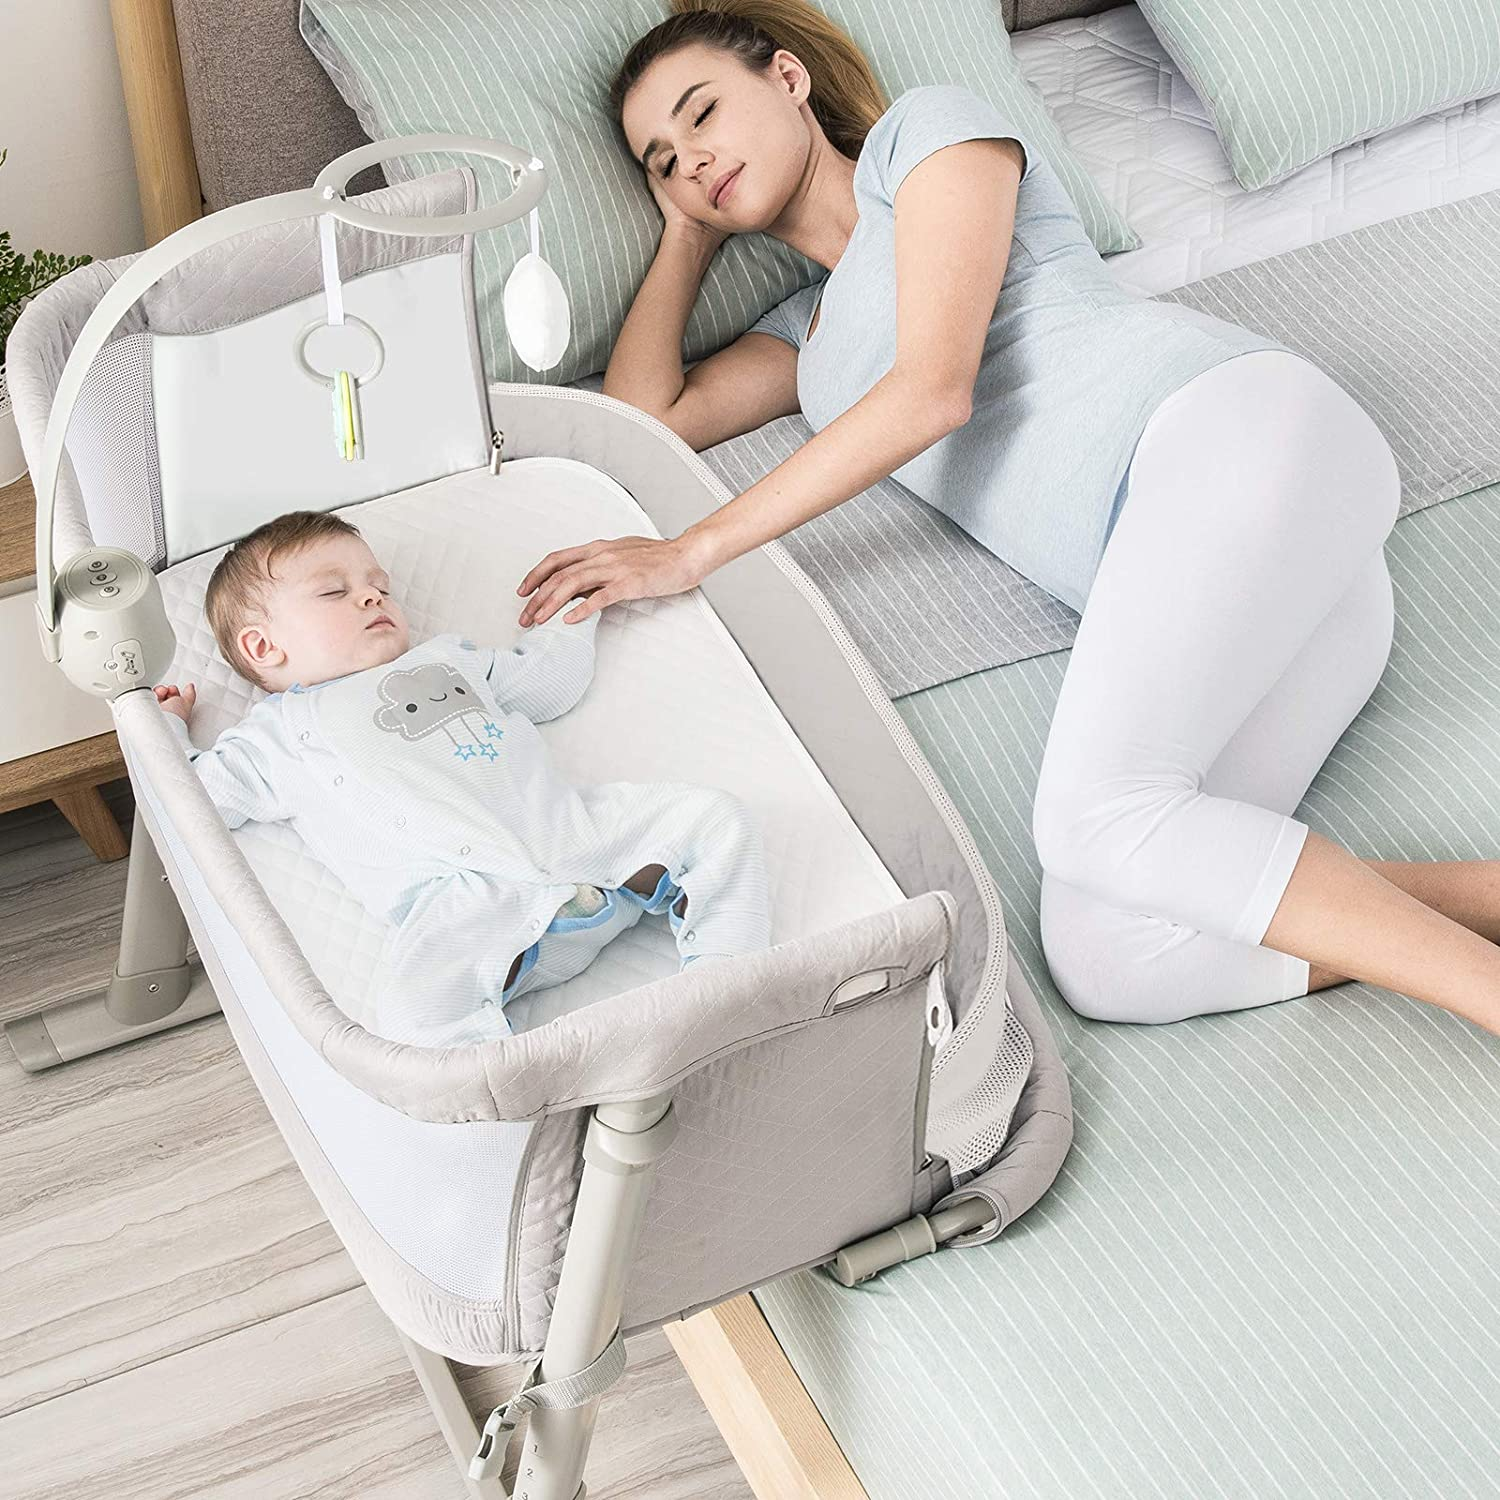 Amazon Com Baby Bassinet Ronbei Bedside Sleeper Baby Bed Cribs Baby Bed To Bed Newborn Baby Crib Adjustable Portable Bed For Infant Baby Boy Baby Girl Bassinet Baby